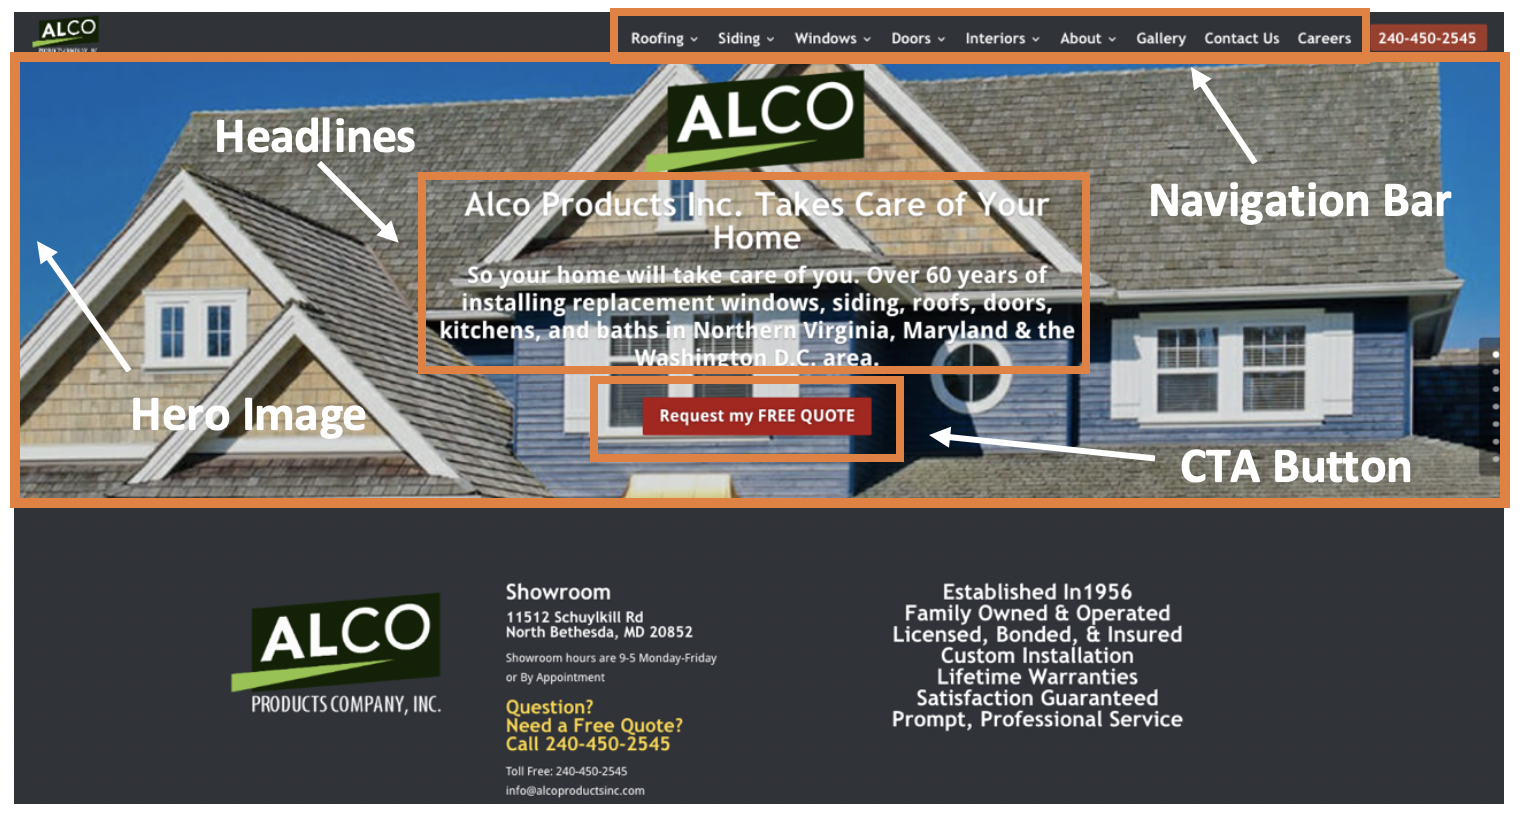 Differences Between Landing Pages Versus Home Pages Alco HP 2